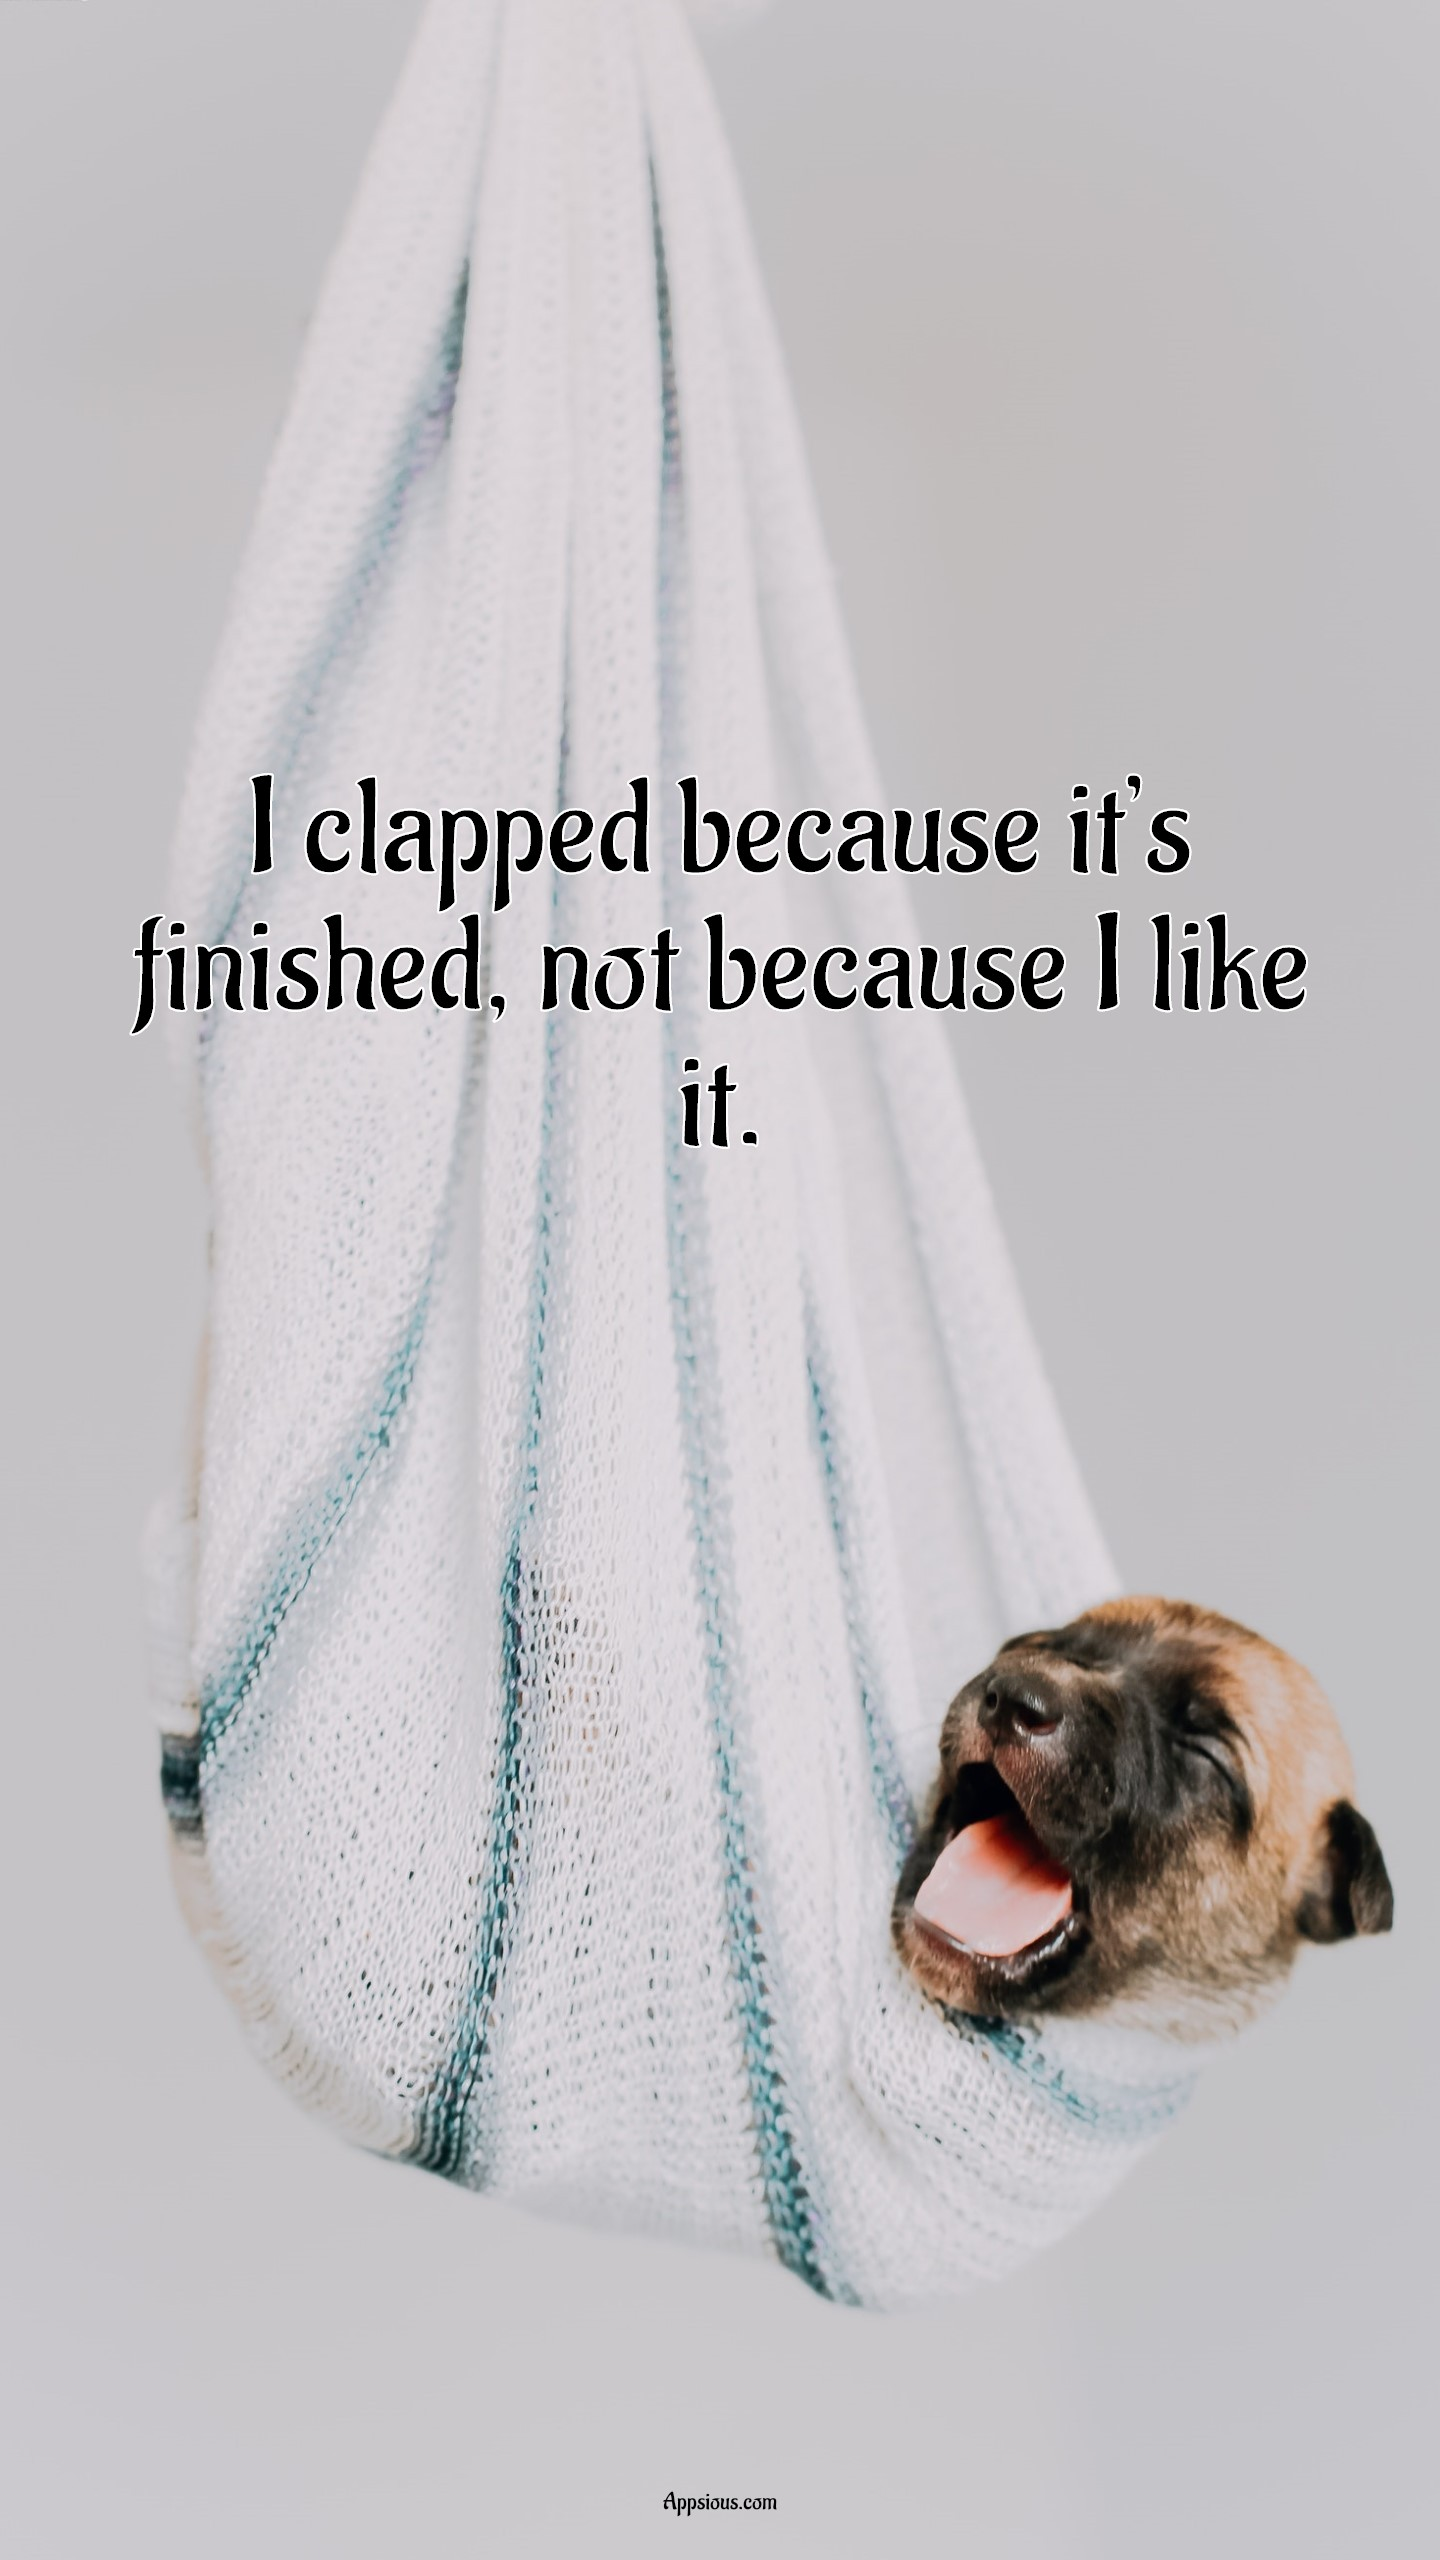 I clapped because it's finished, not because I like it.